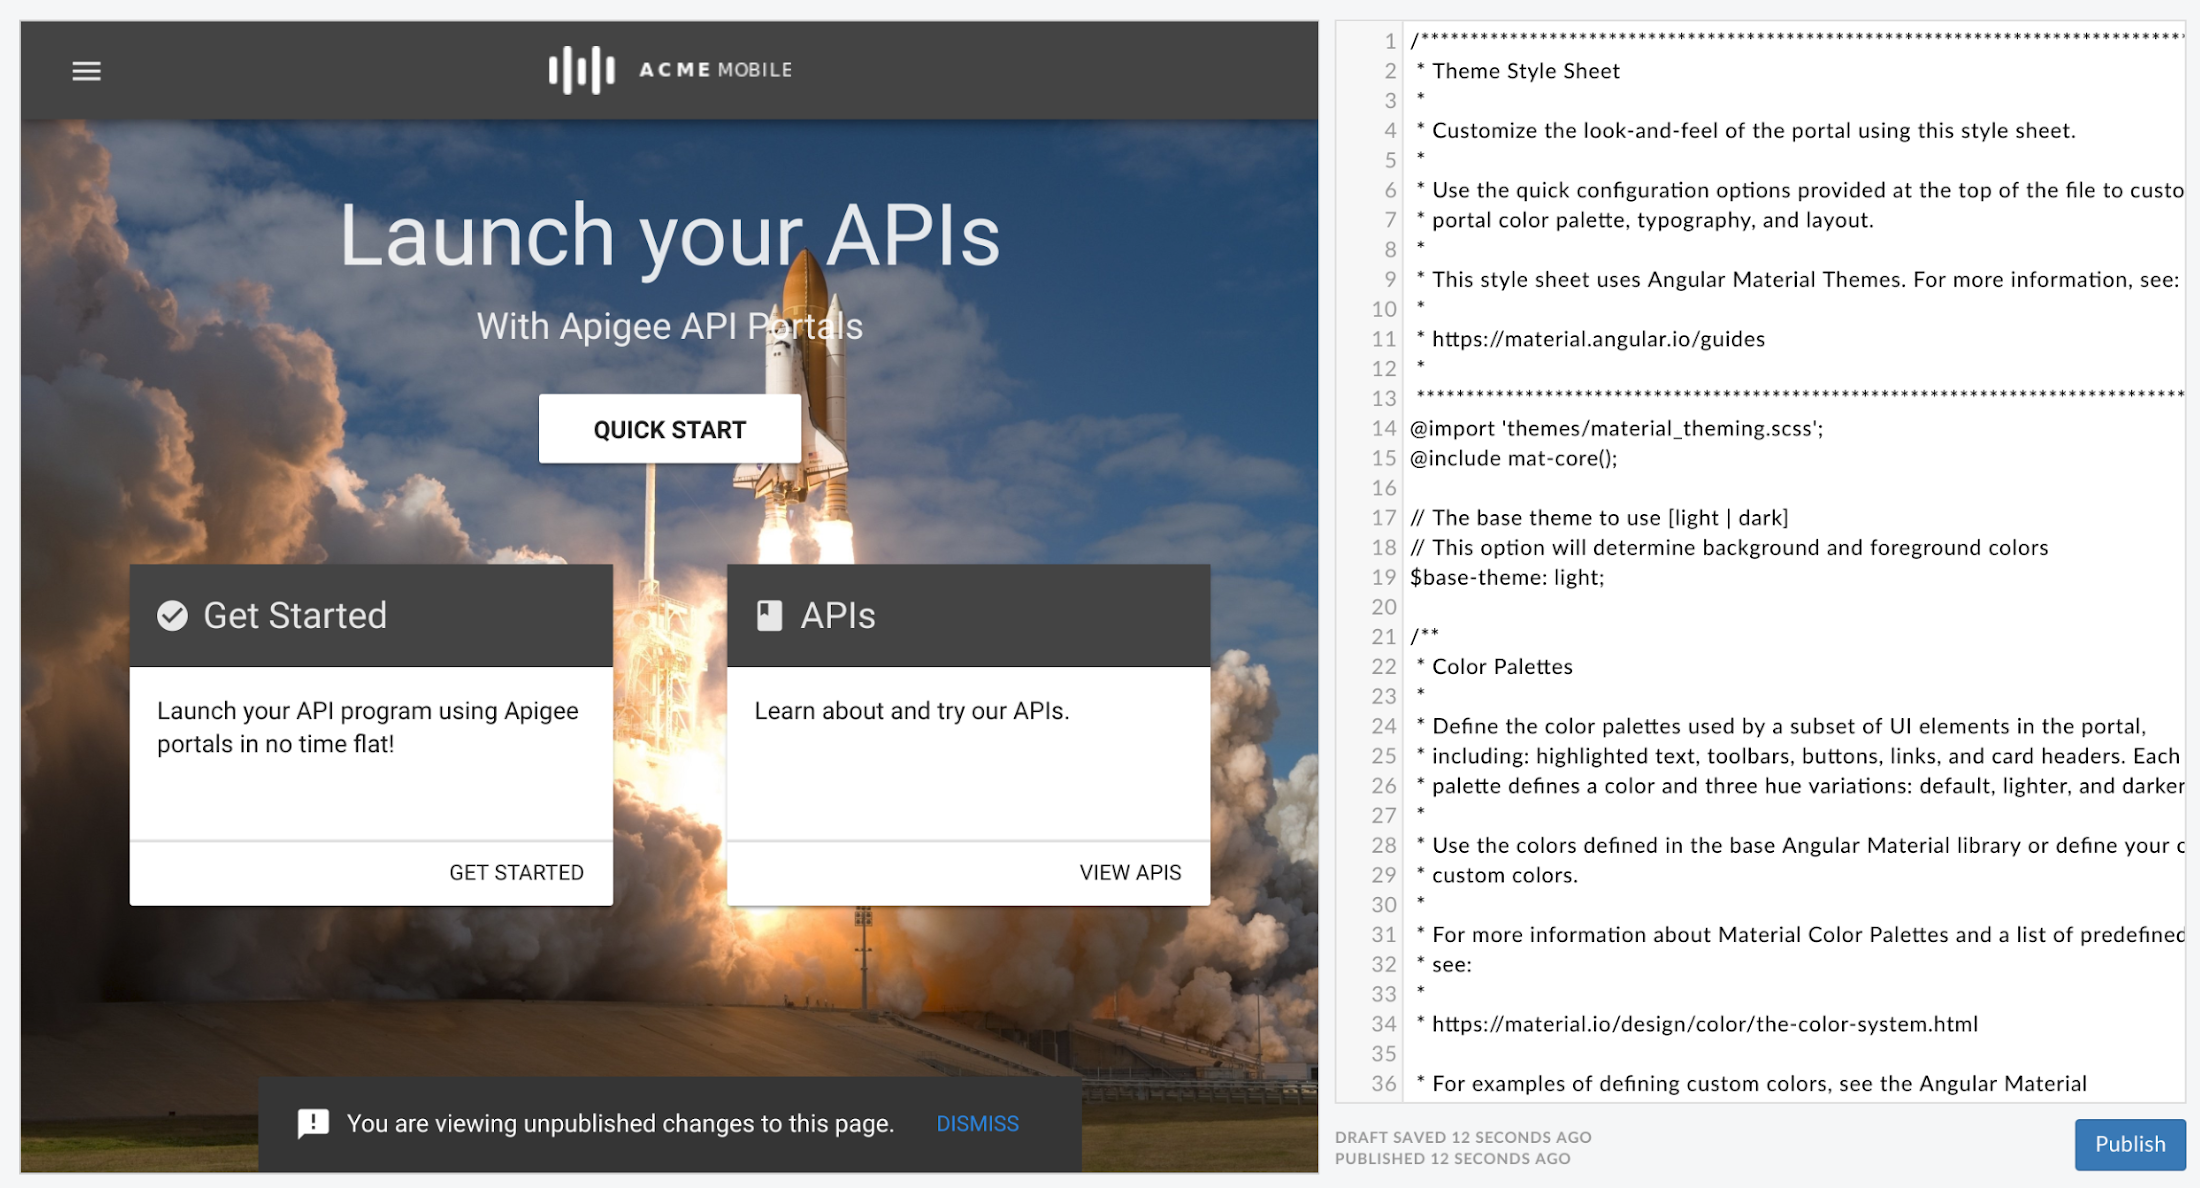 Announcing Enhancements to the Apigee Integrated Developer Portal